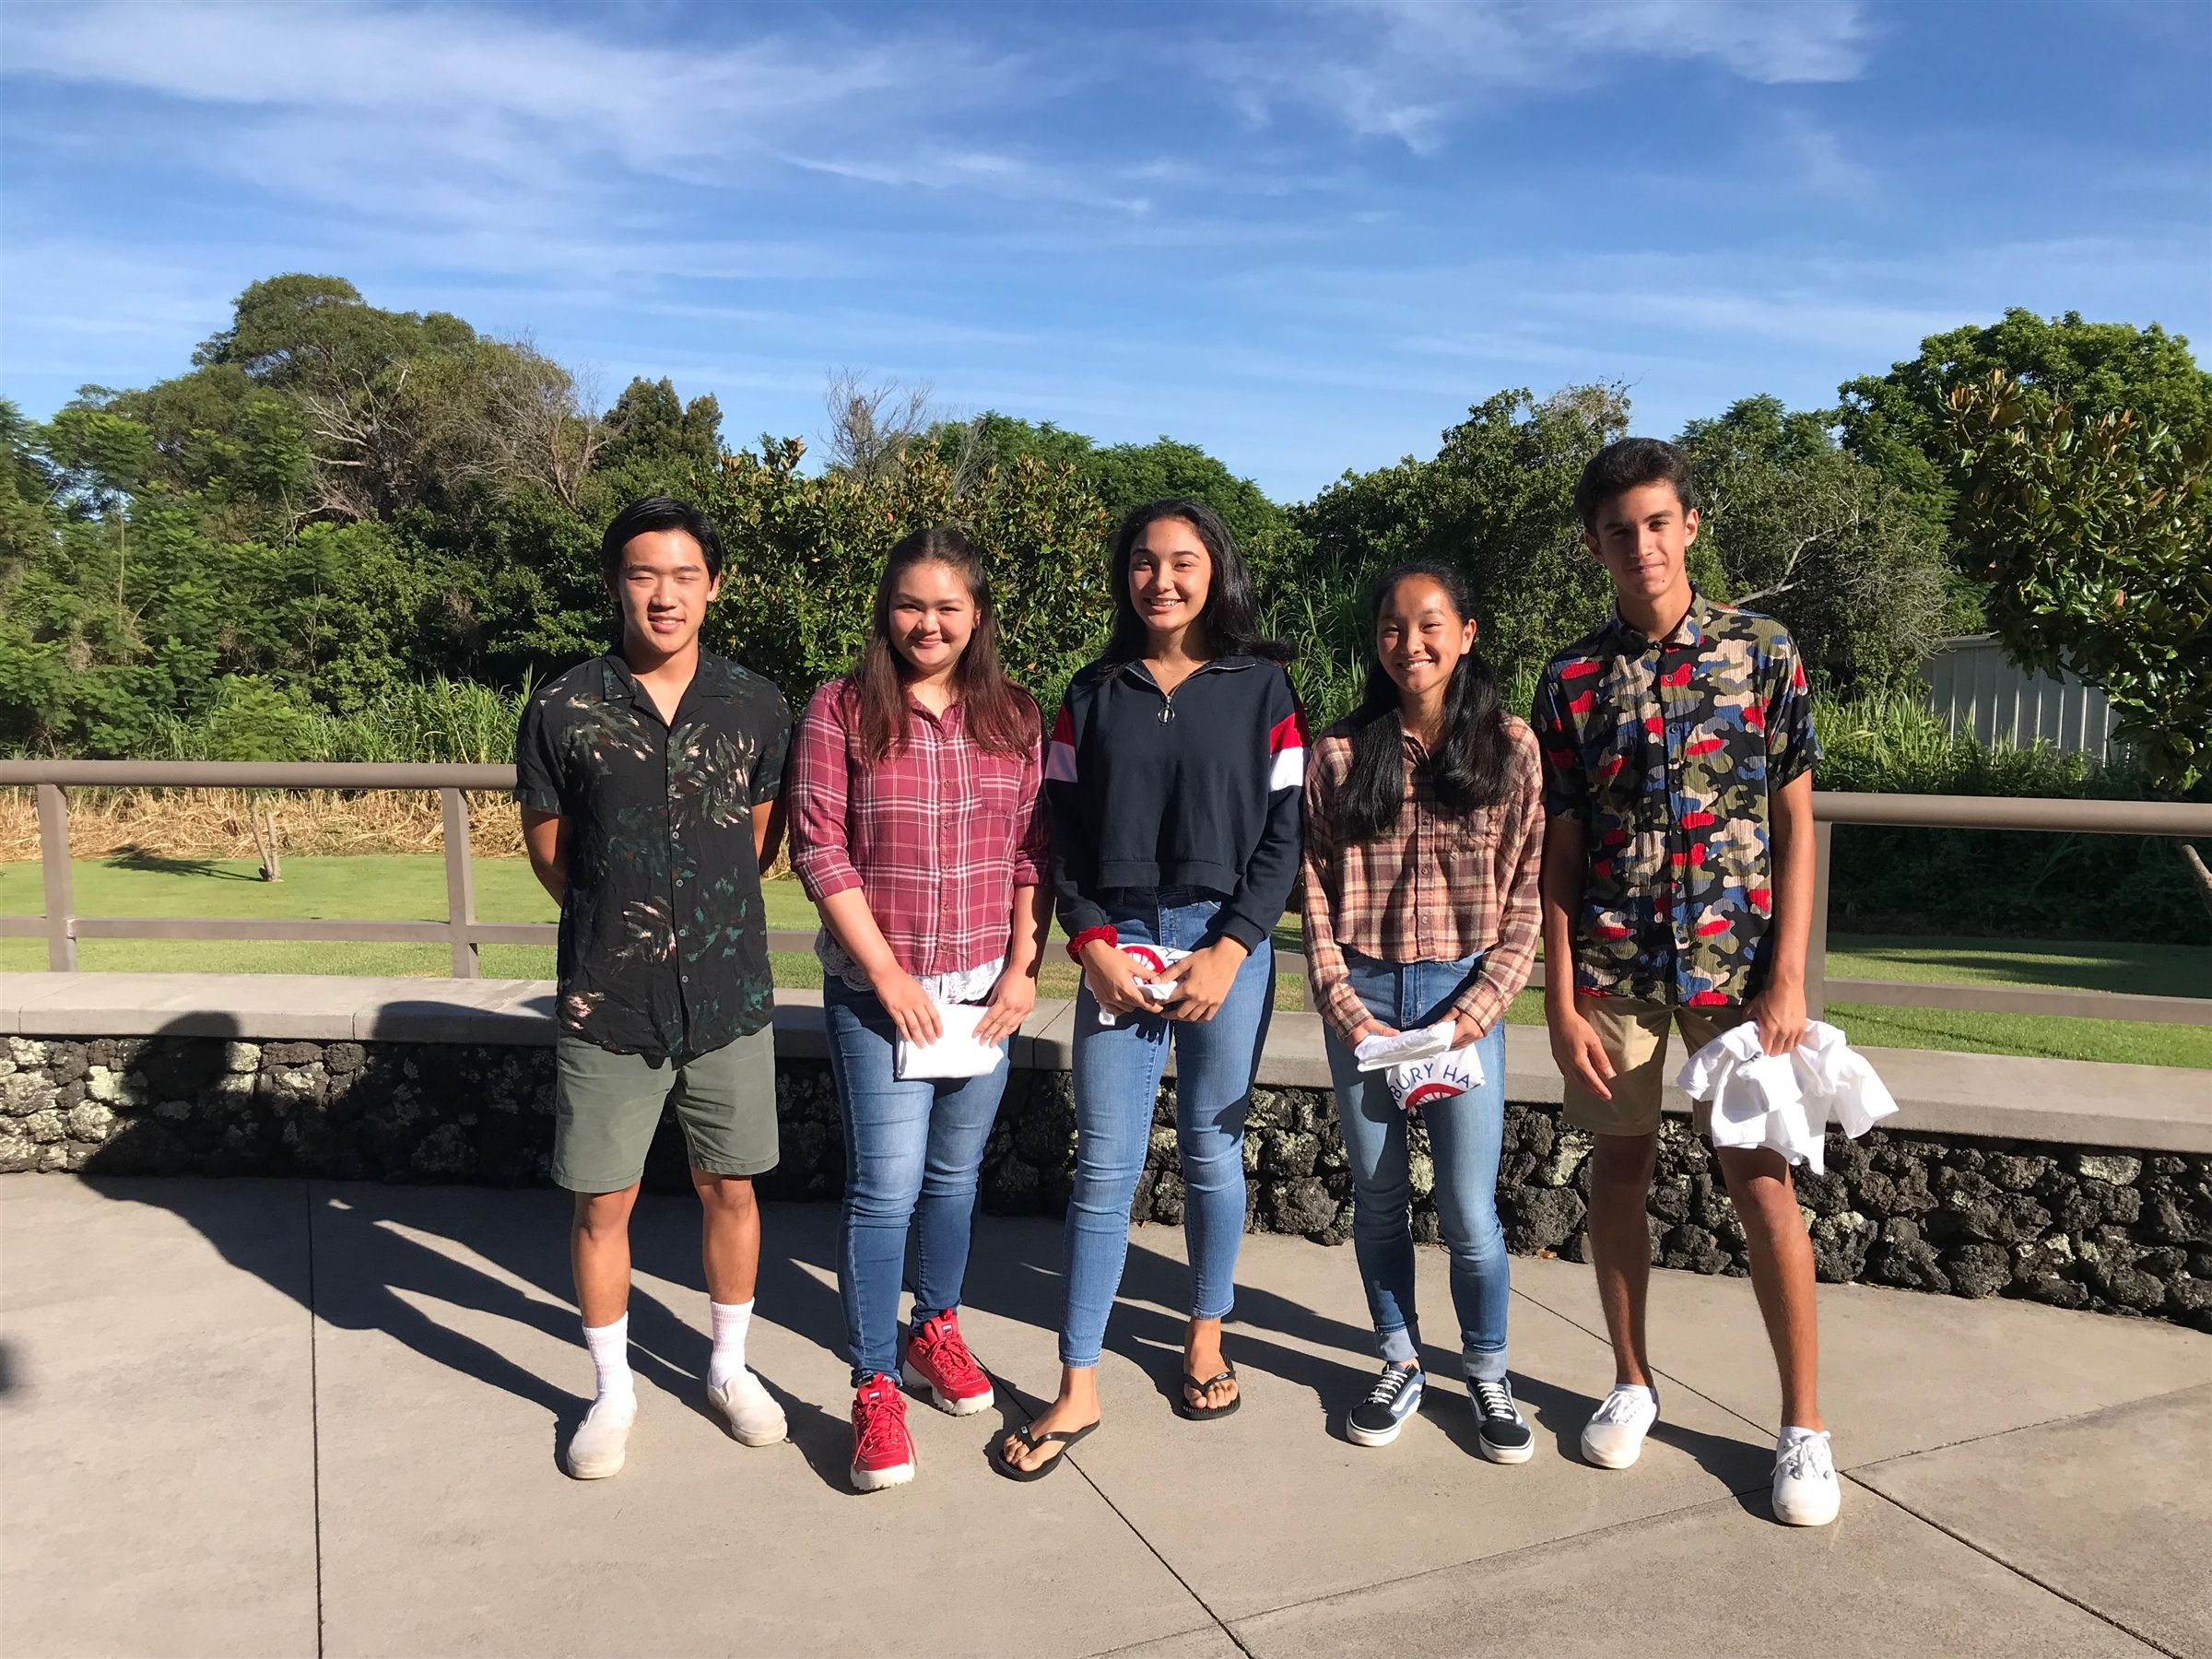 Blayde Omura (Football), Taylie Kawakami (Air Riflery), Skylar Conley (Volleyball), Lily McLeod (Cross Country), Ka'eo Keomaka (Cross Country)